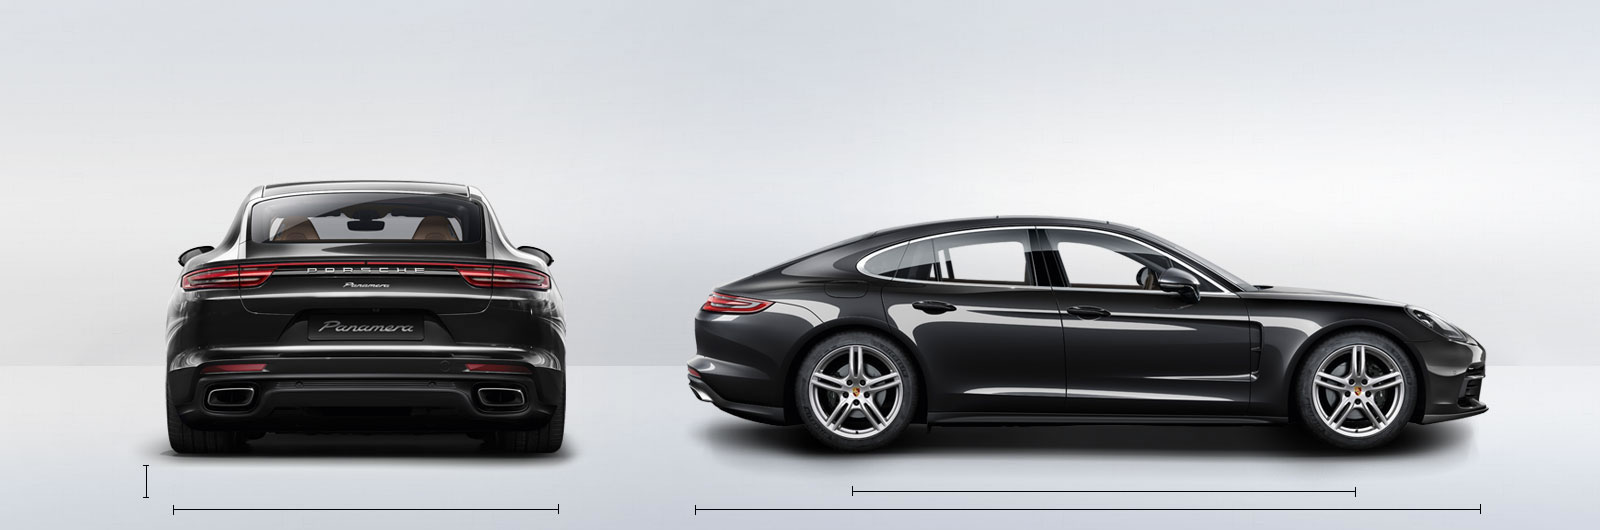 Panamera Specifications